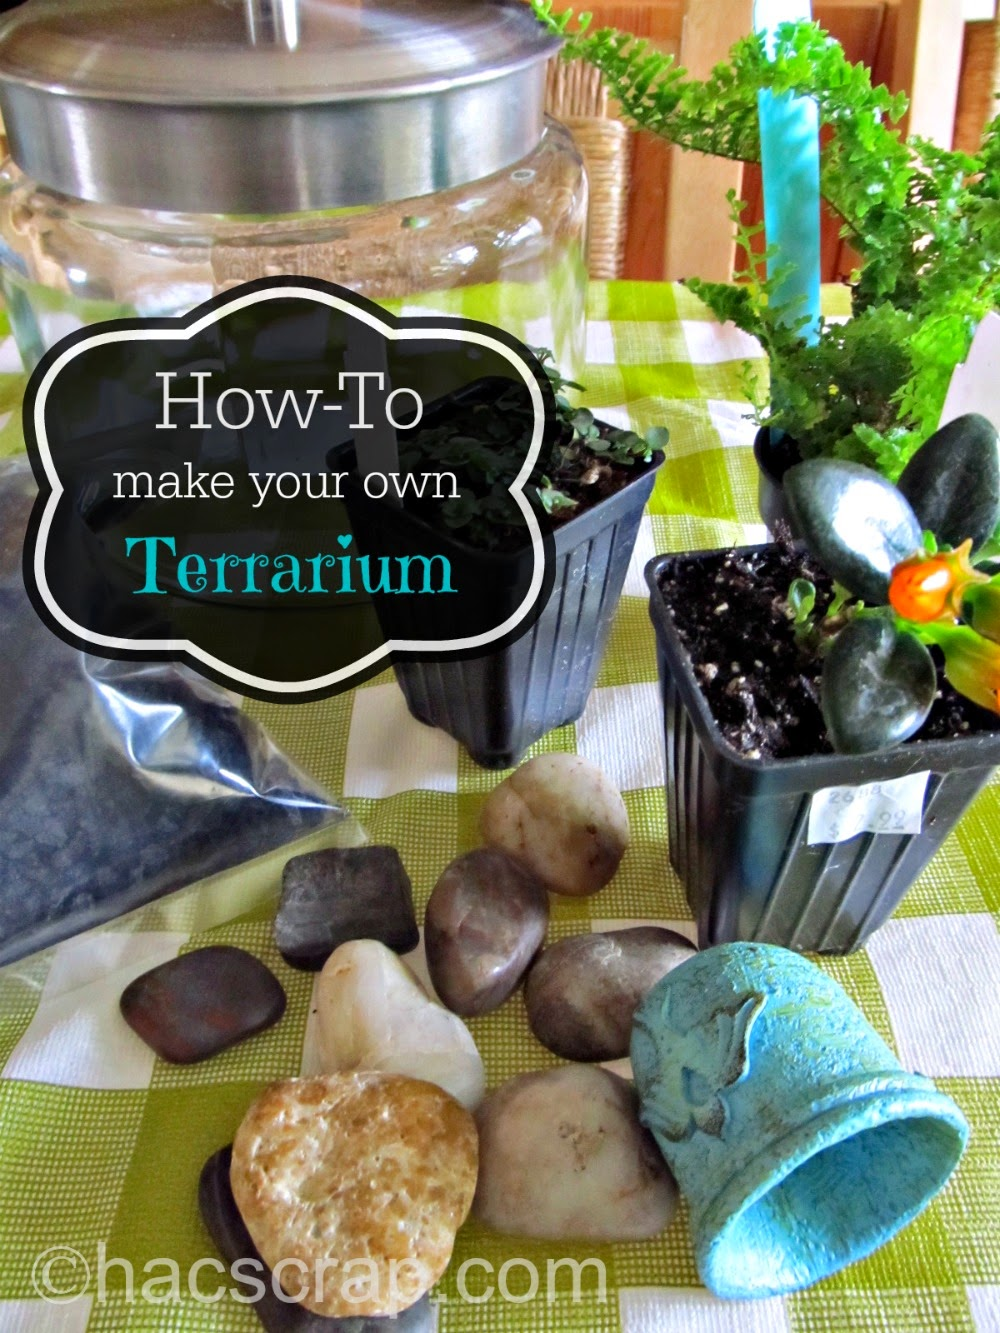 Making Your Own Terrarium - Supplies